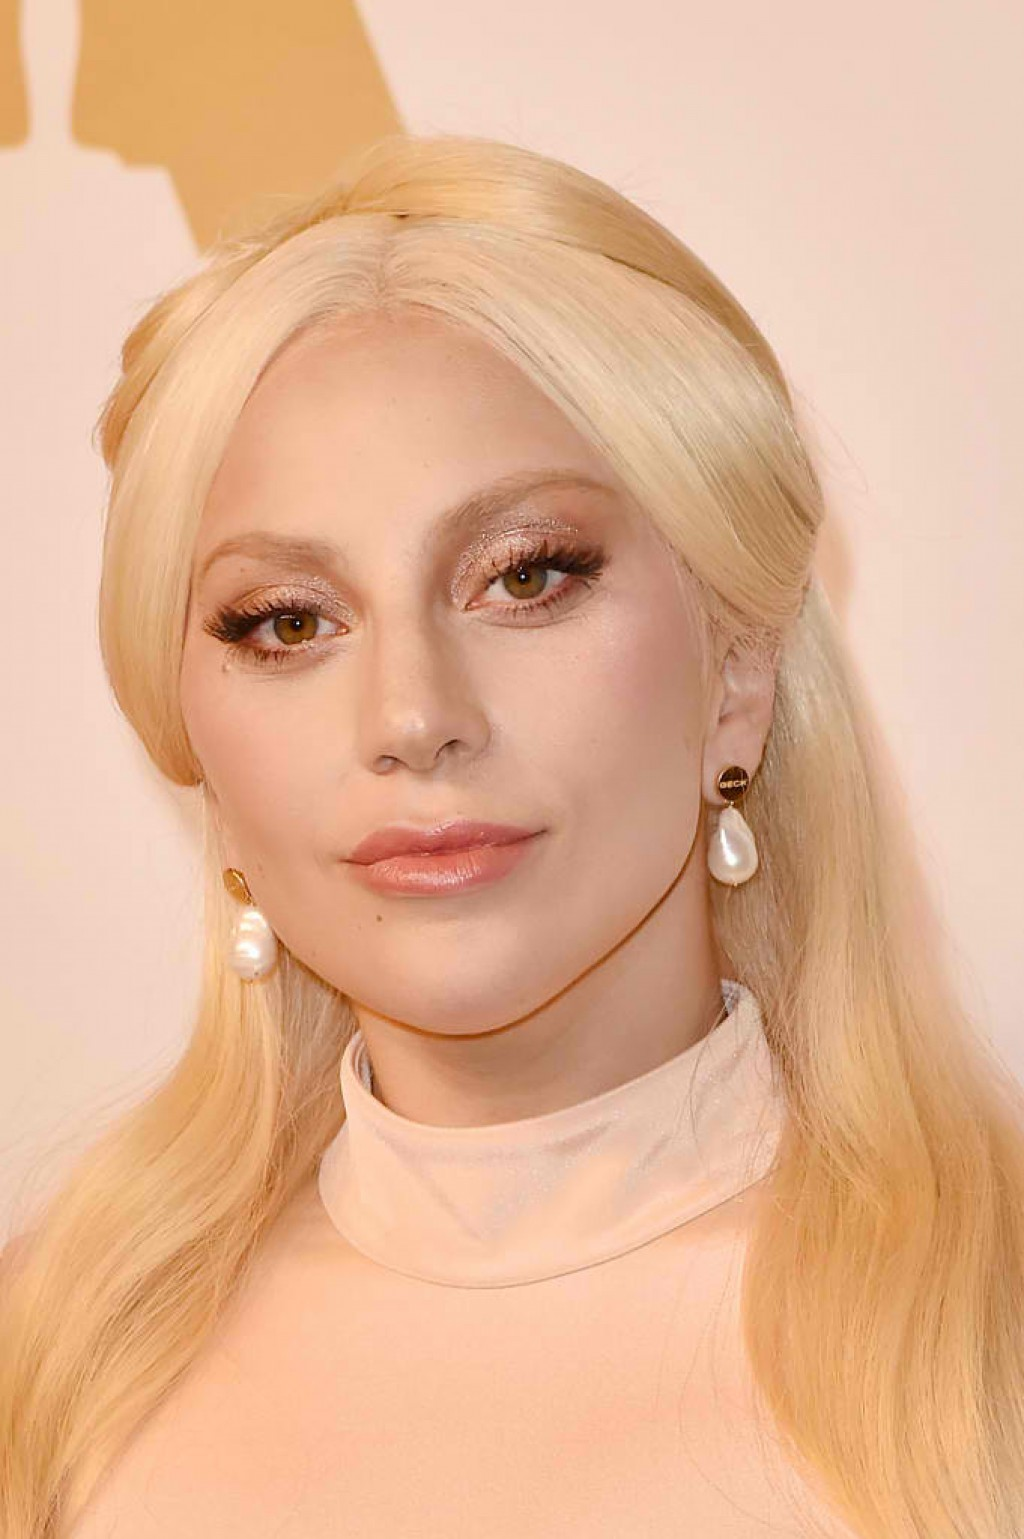 88th-Annual-Academy-Awards-Nominee-Luncheon-Lady-Gaga-1024x1539